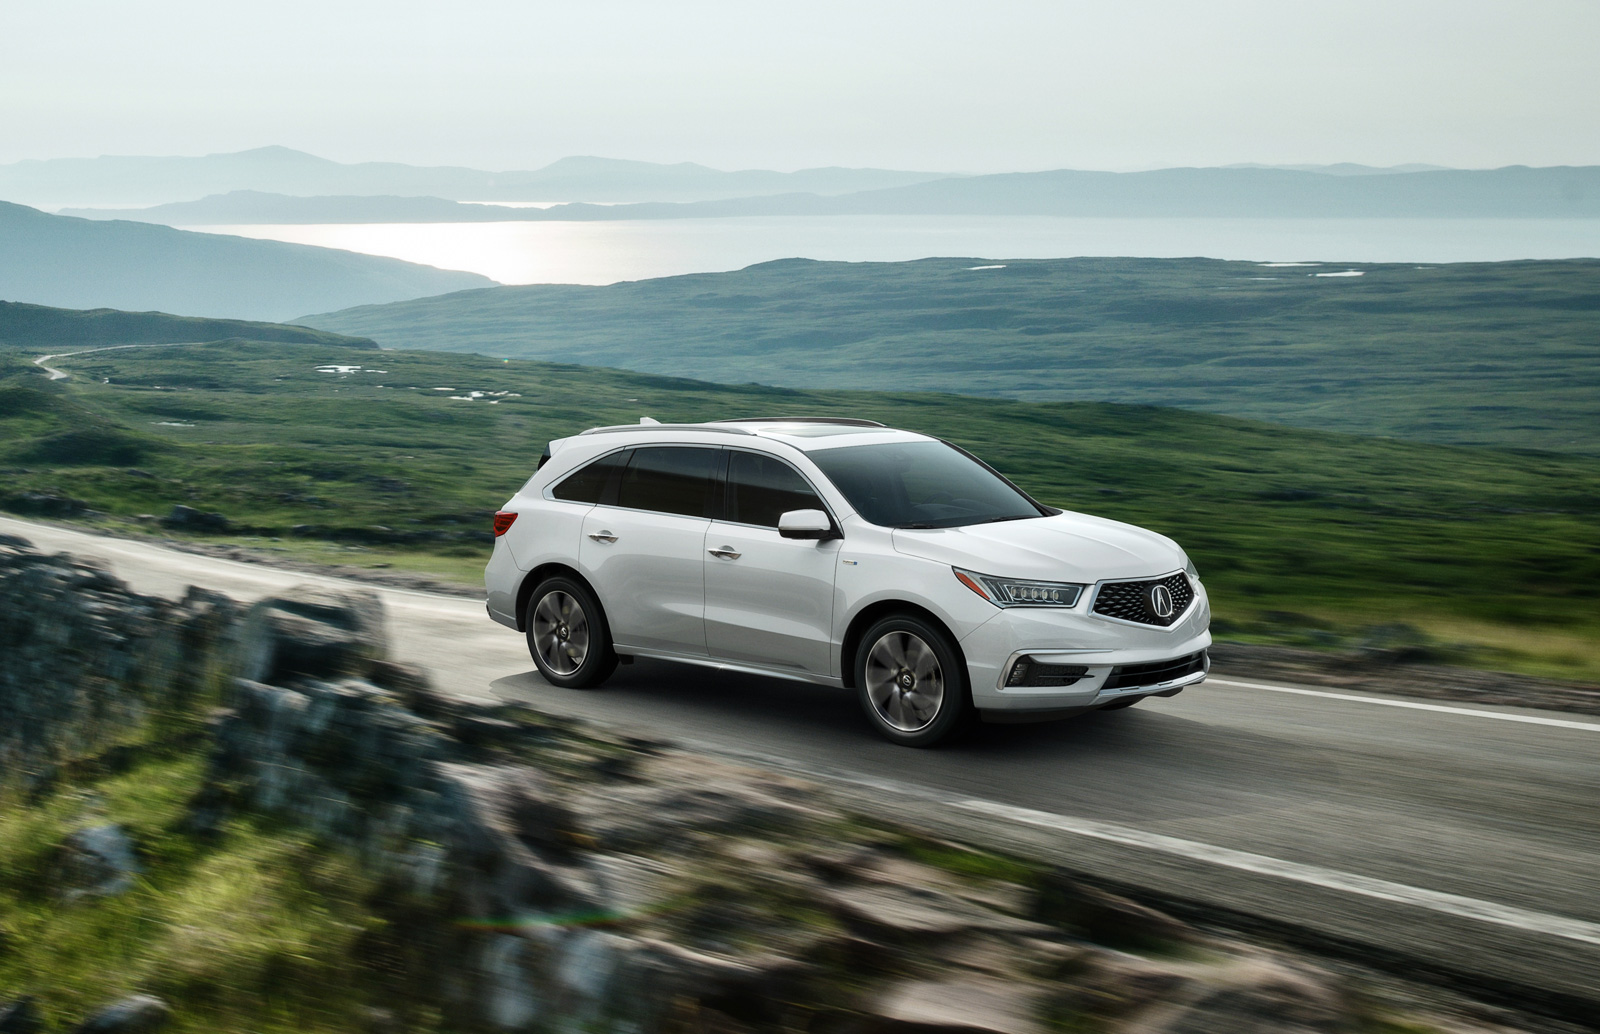 2017 Mdx Sports Hybrid Sh Awd With Advance Packagewhite Diamond Pearlpenger Front 3 4